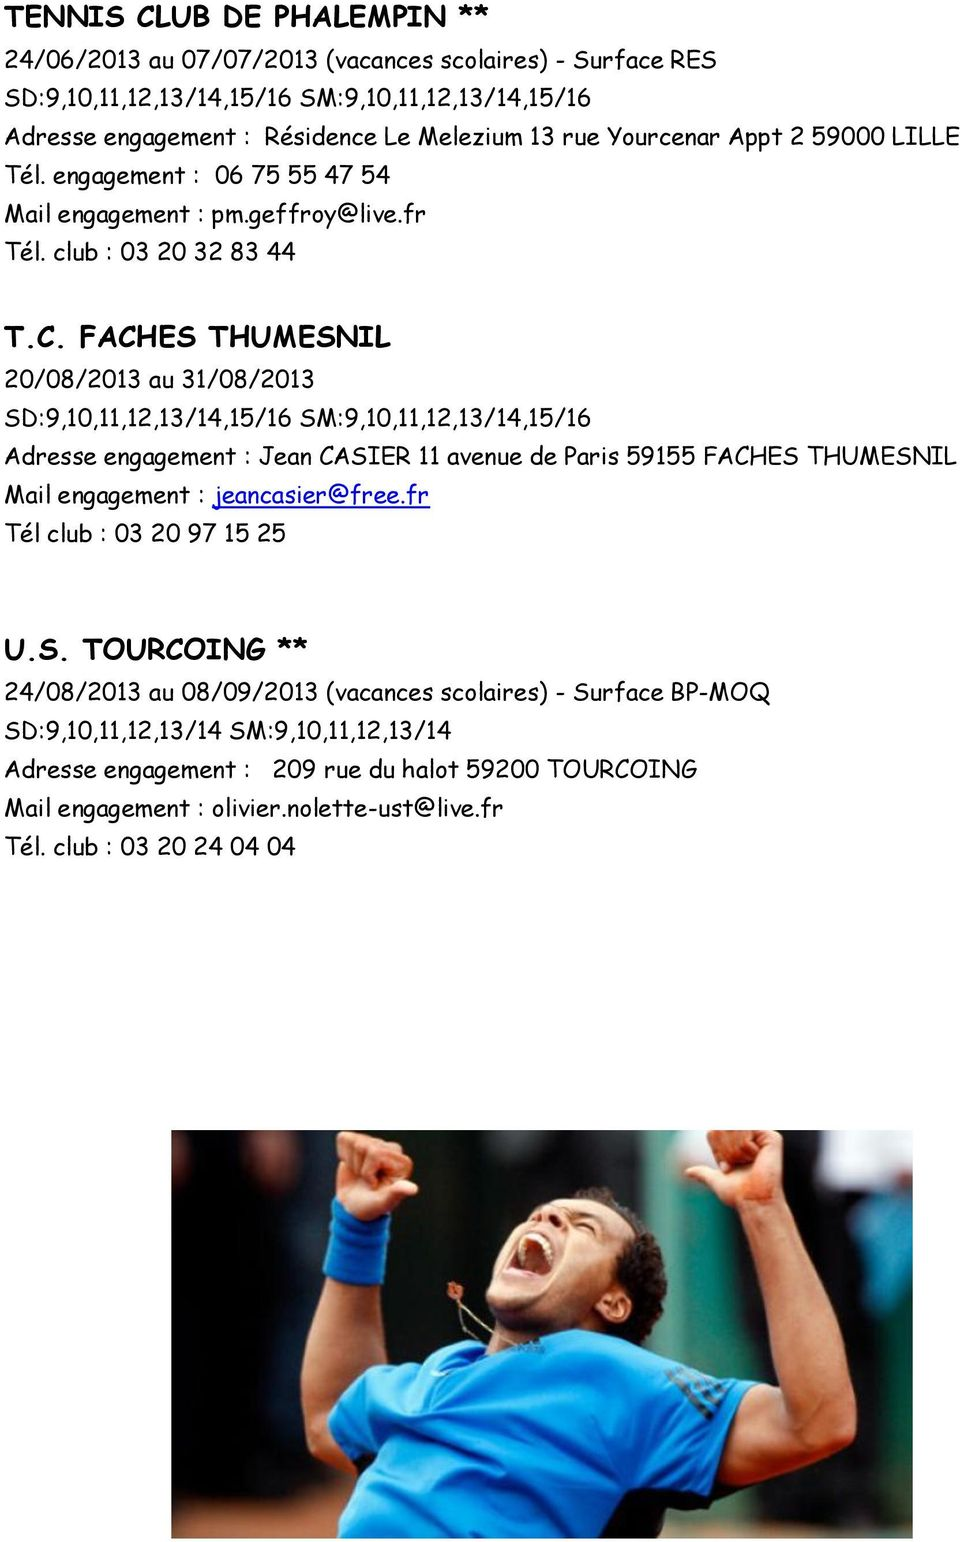 FACHES THUMESNIL 20/08/2013 au 31/08/2013 SD:9,10,11,12,13/14,15/16 SM:9,10,11,12,13/14,15/16 Adresse engagement : Jean CASIER 11 avenue de Paris 59155 FACHES THUMESNIL Mail engagement :